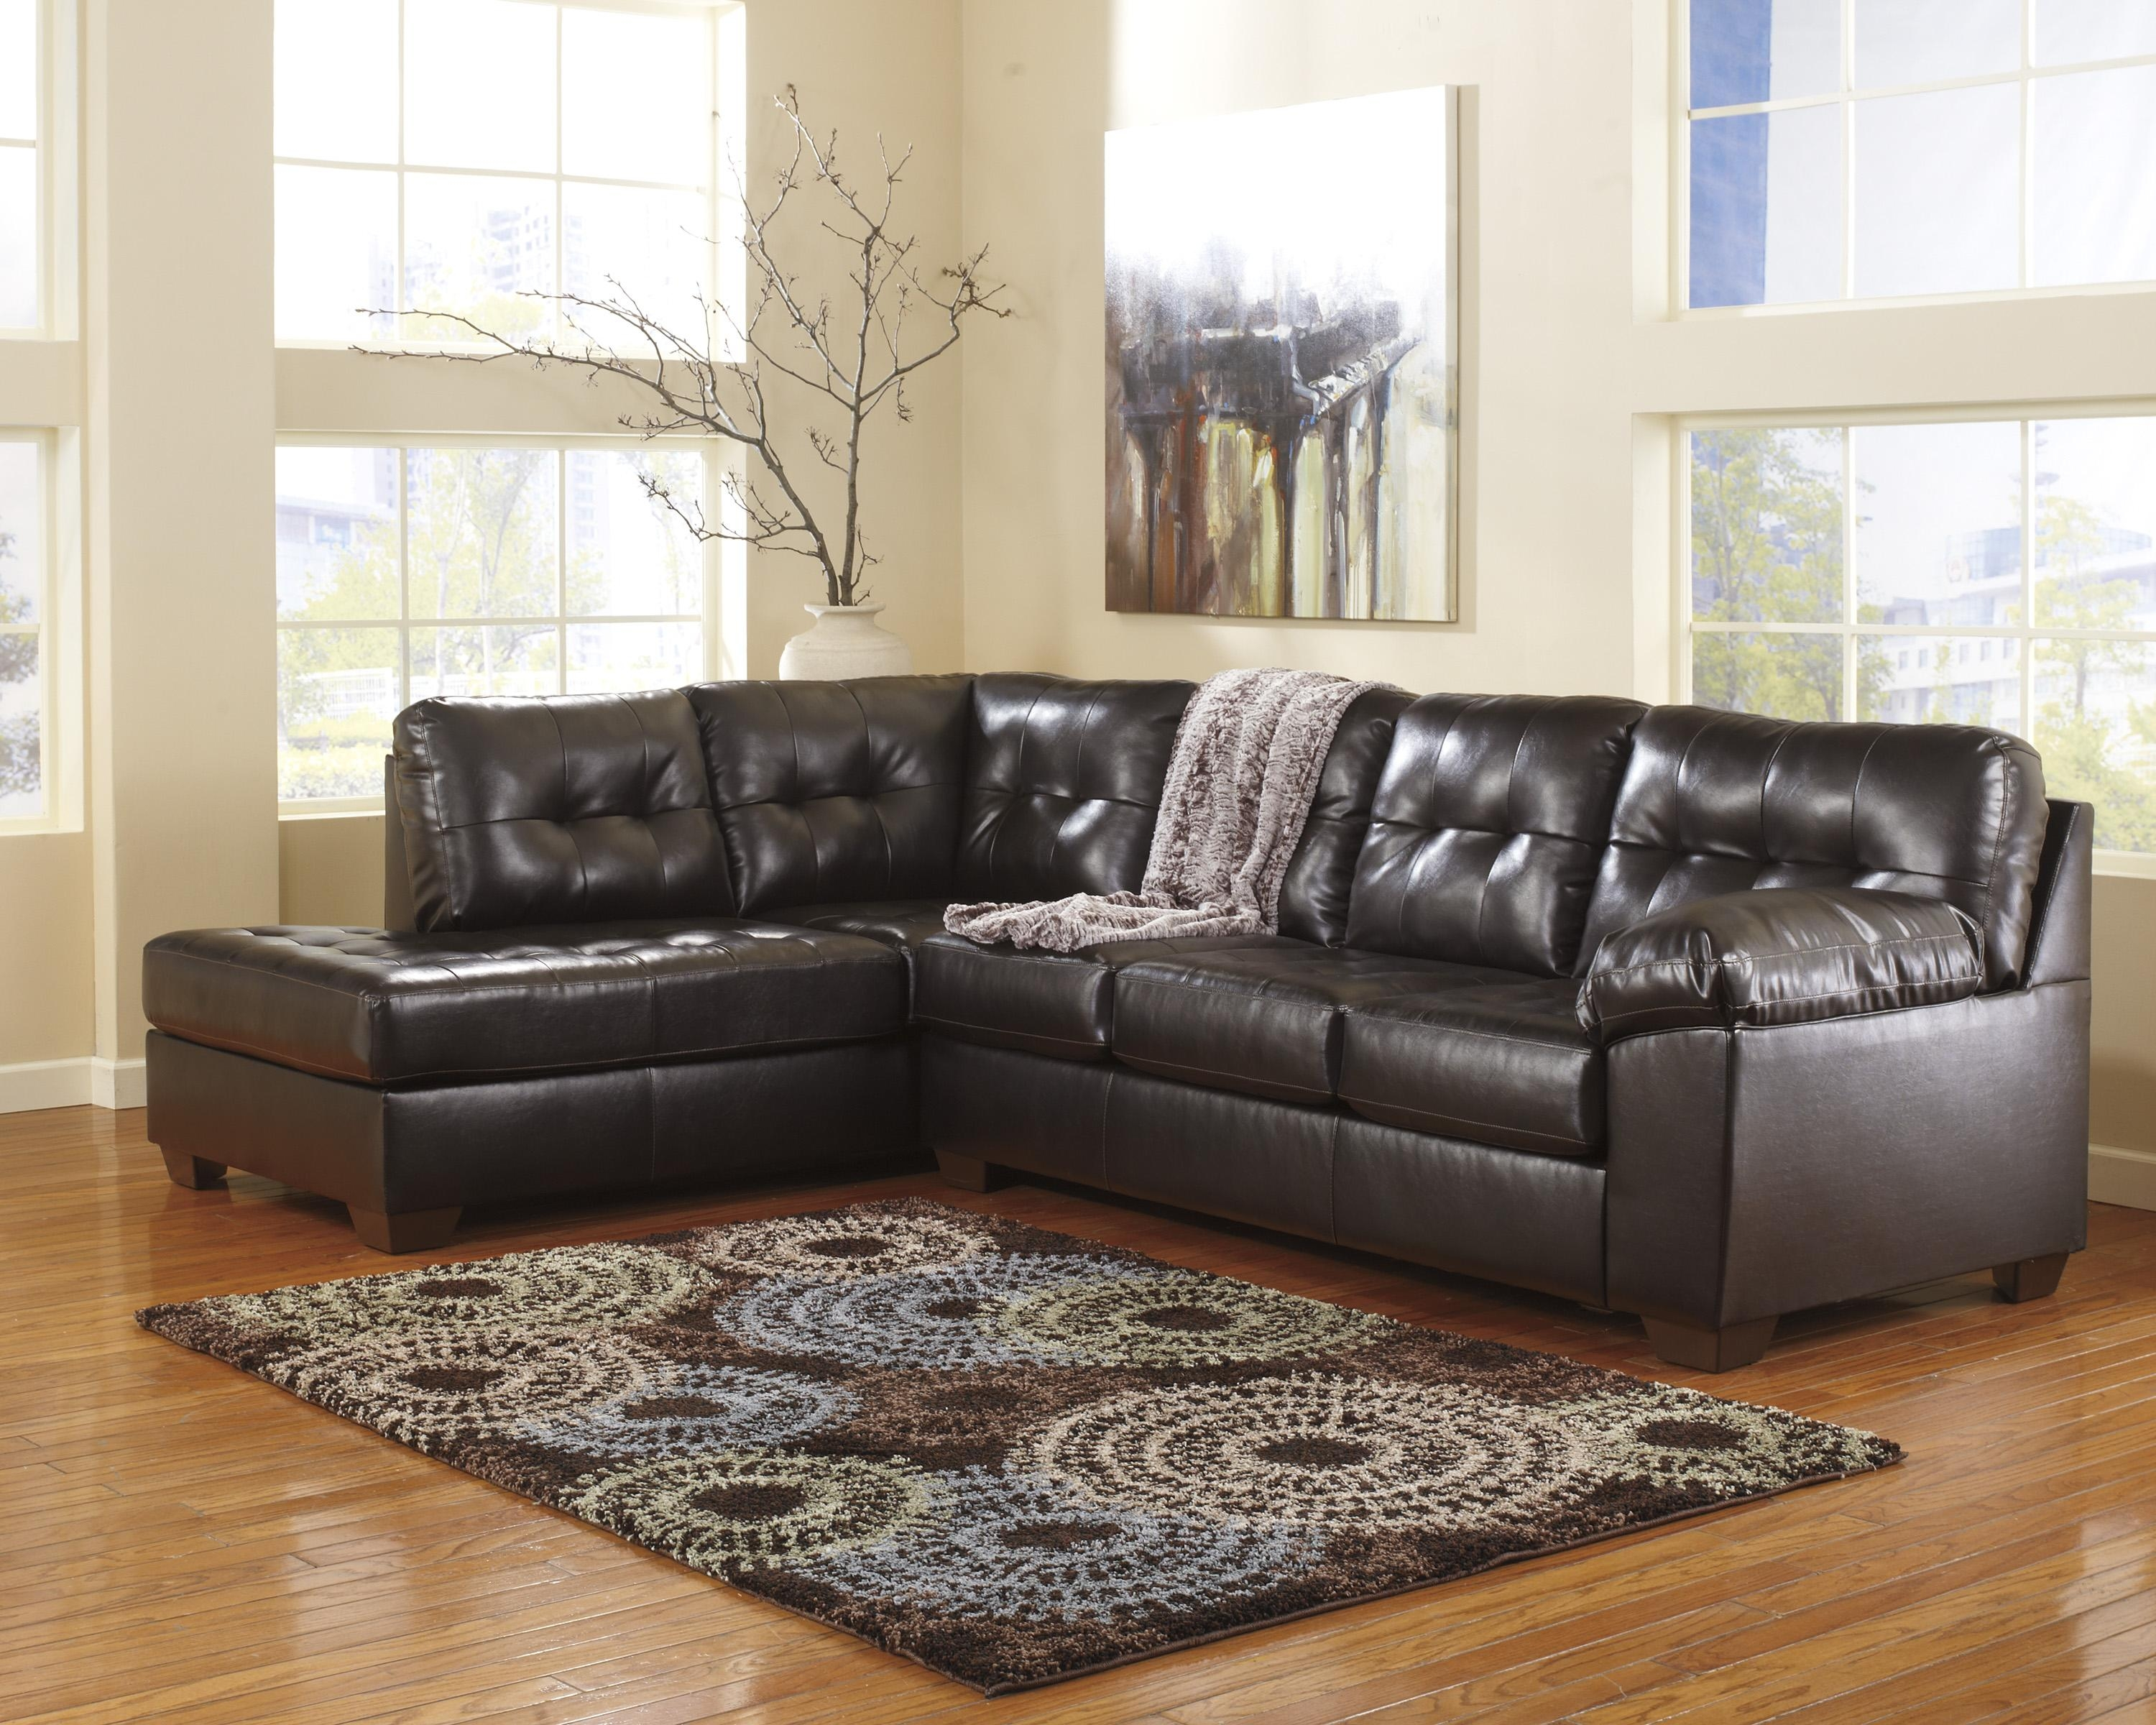 Ideas: Faux Leather Sectional Sofa Ashley And Ashley Sectional Regarding Ashley Faux Leather Sectional Sofas (Image 10 of 20)